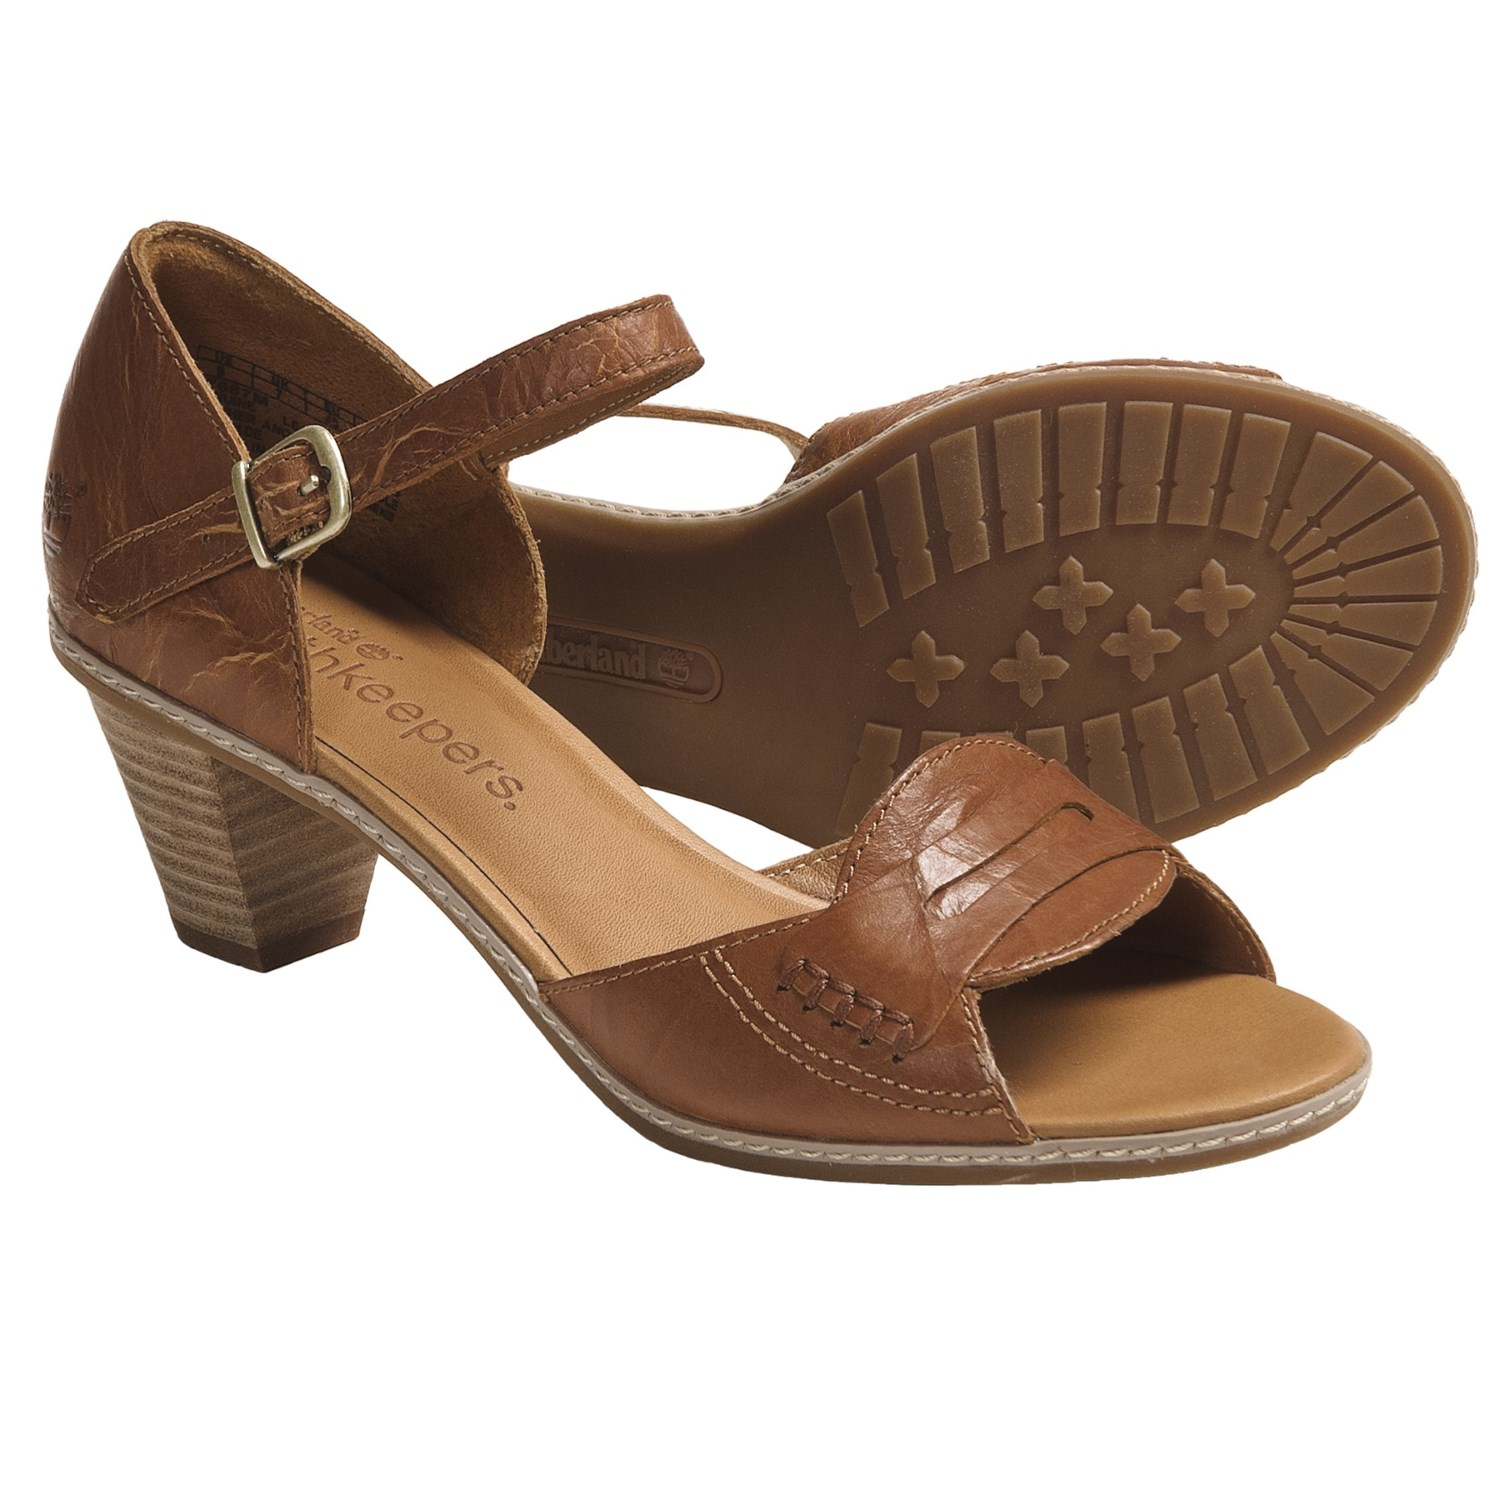 Innovative A Superior Standard Of Style Premium Fullgrain Leather Is What Makes This Sandal The Stylish Stepper That It Is A Leathercovered Natural Latex Footbed Provides A Premium Feel And Optimal Comfort From Timberland